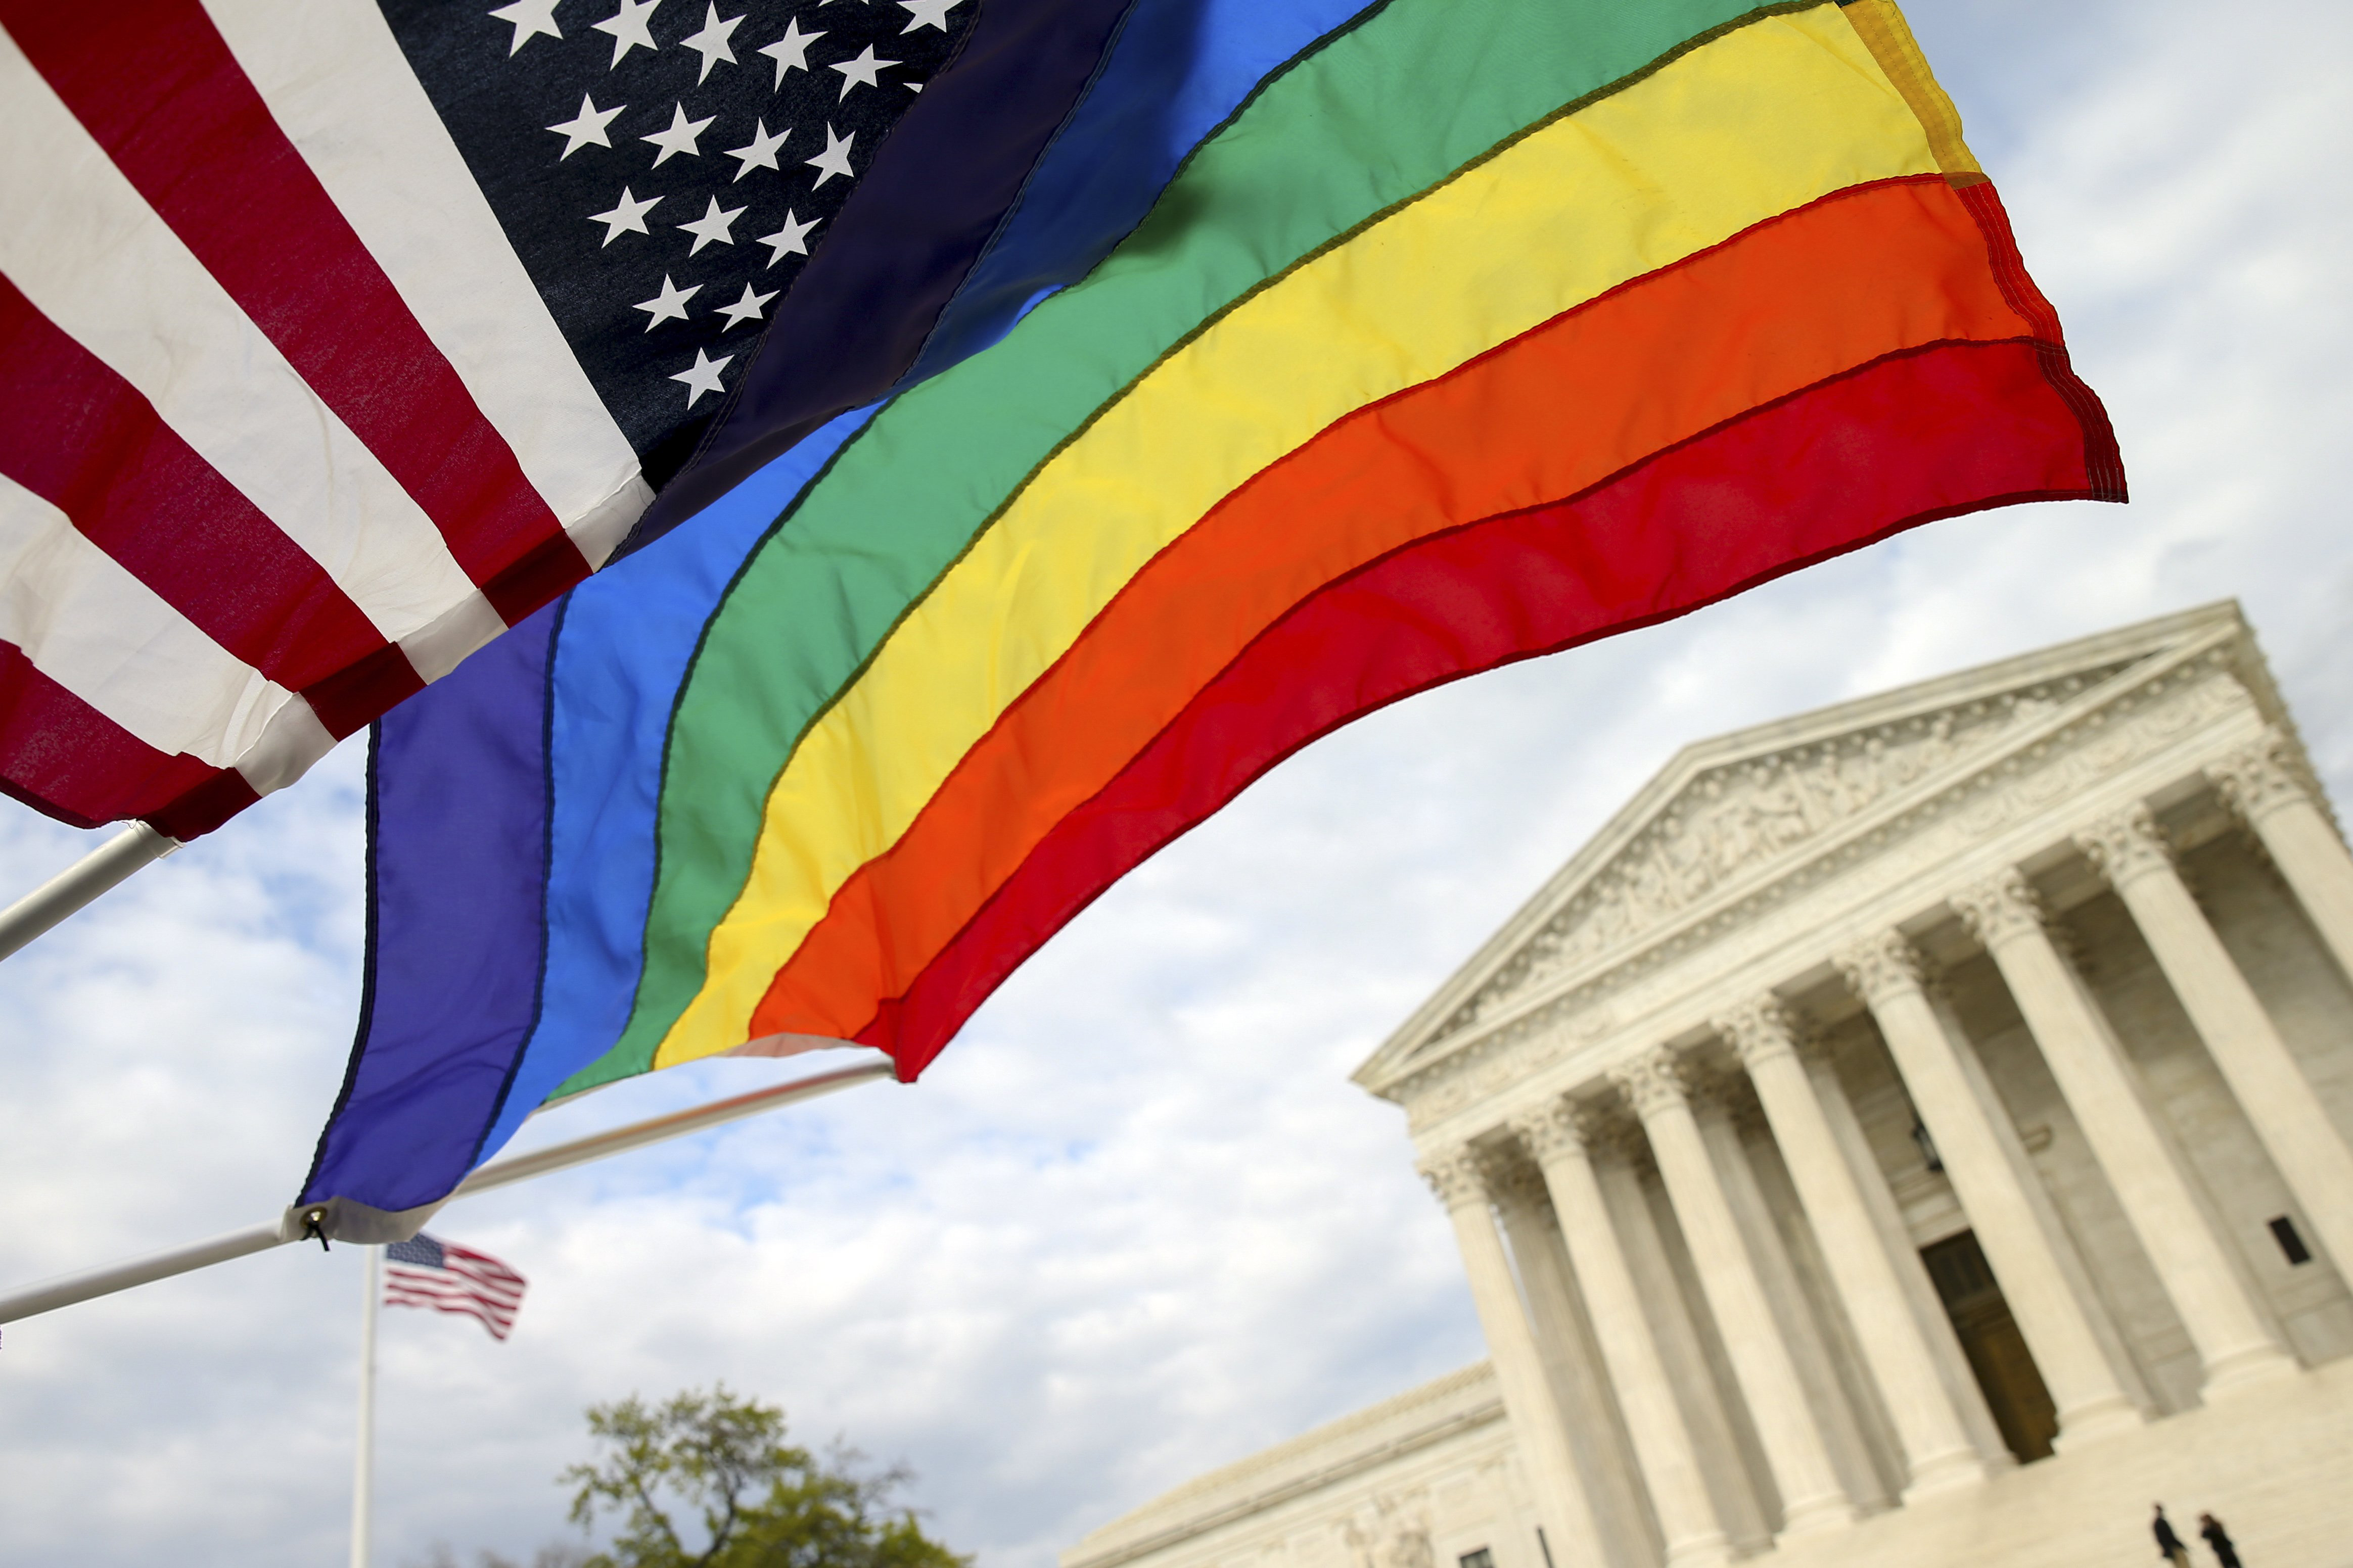 An American flag and a rainbow colored flag flies in front of the Supreme Court in Washington, April 27, 2015, as the Supreme Court is scheduled to hear arguments on the constitutionality of state bans on same-sex marriage on Tuesday.